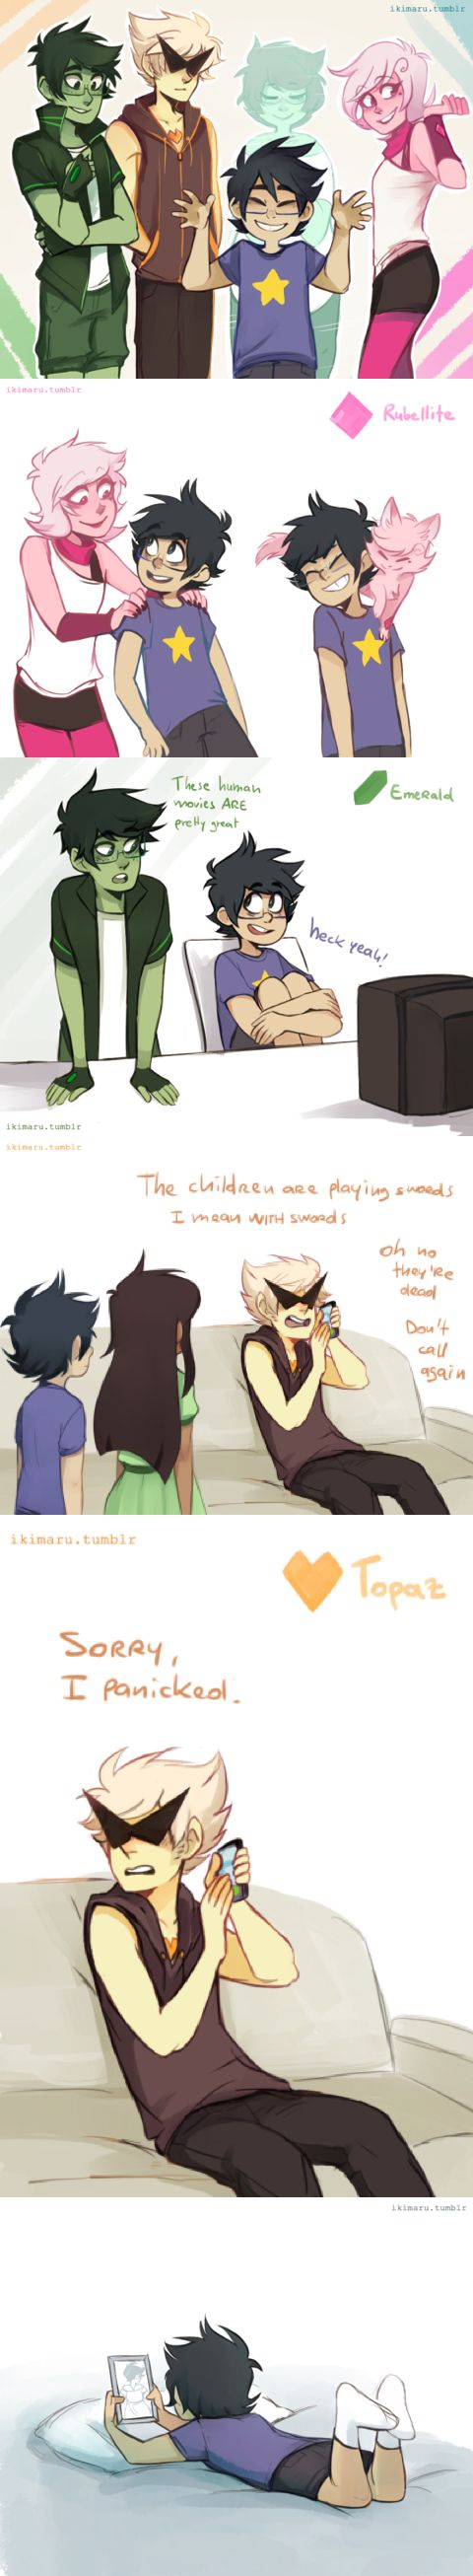 BEST CROSSOVER EVER http://ikimaru.tumblr.com/post/118895915300/got-around-finishing-those-drawings-for-the-su-au